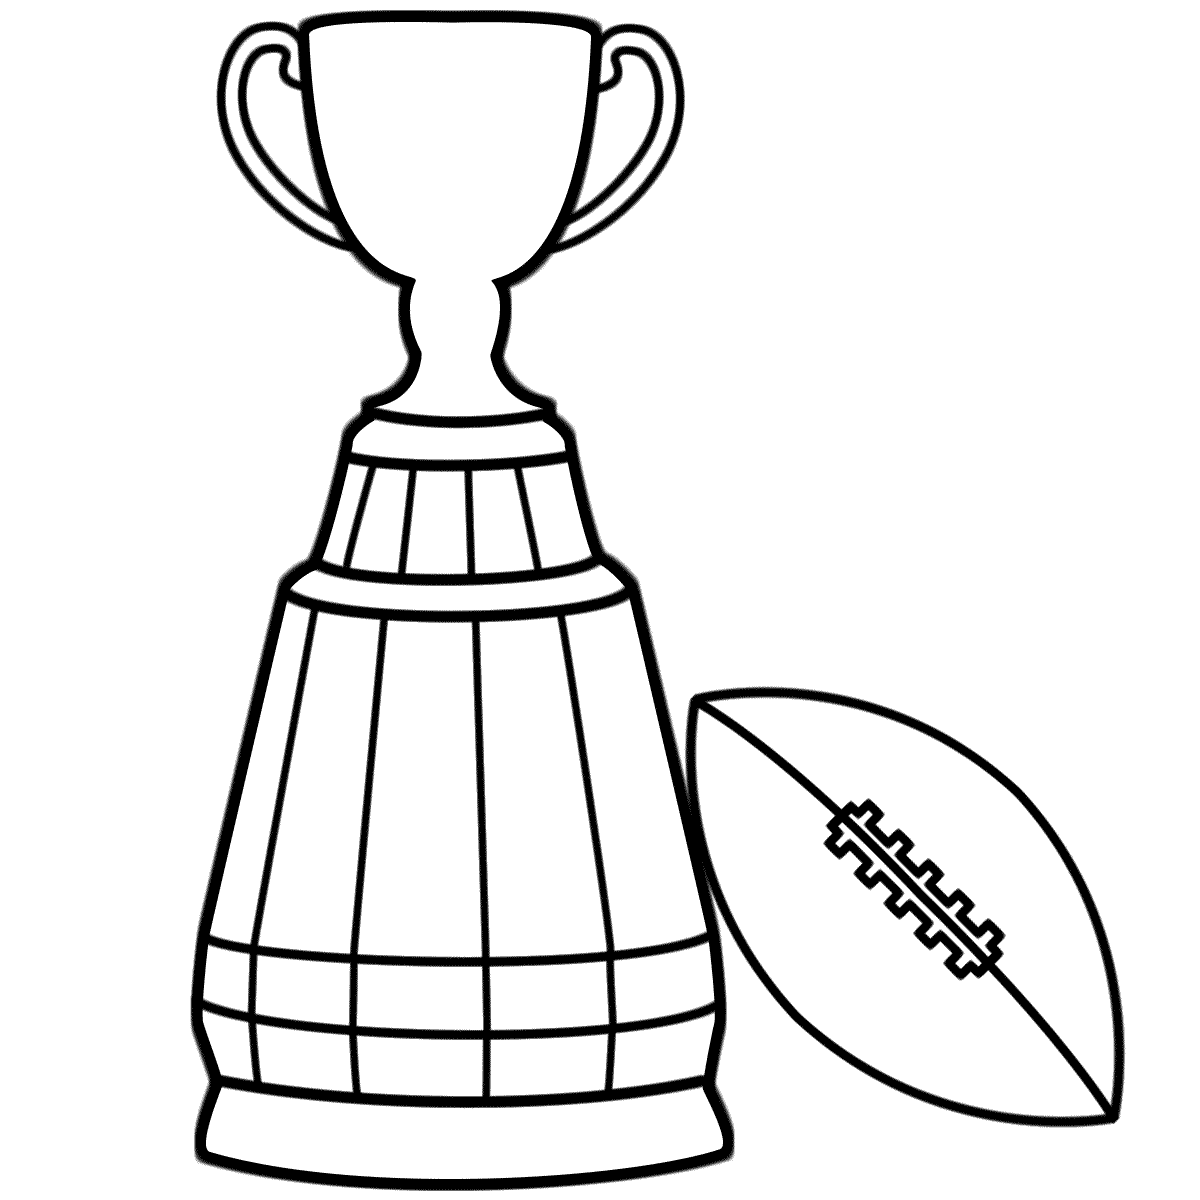 super bowl trophy with a football coloring page super bowl - Super Bowl Trophy Coloring Pages